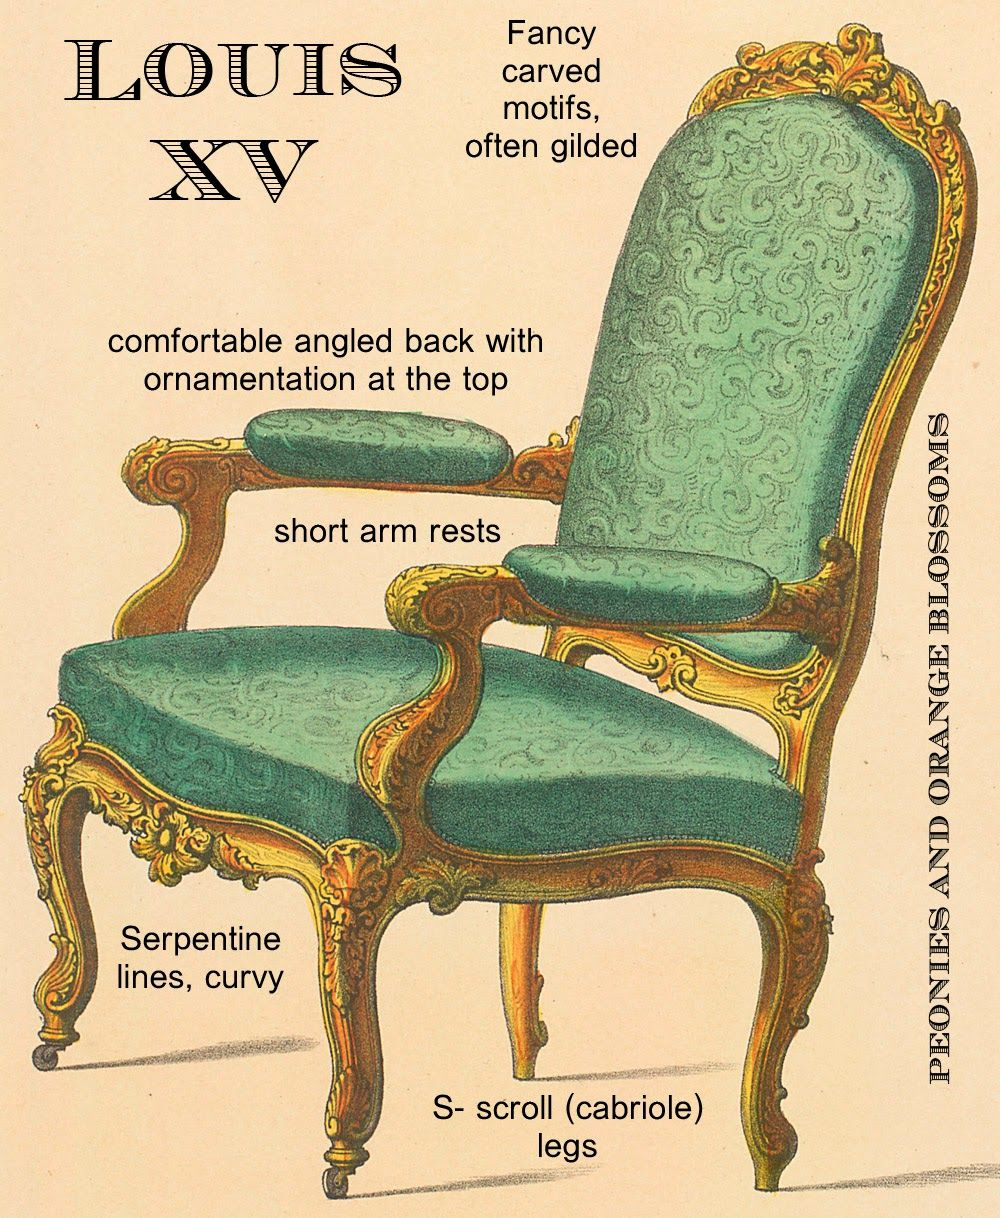 Chair antique queen anne chair the buzz on antiques antique chairs 101 - French Furniture Pieces From The Are In Many Ways The Platonic Ideal Of An Antique By And Large They Are Exquisitely Constructed Reflect